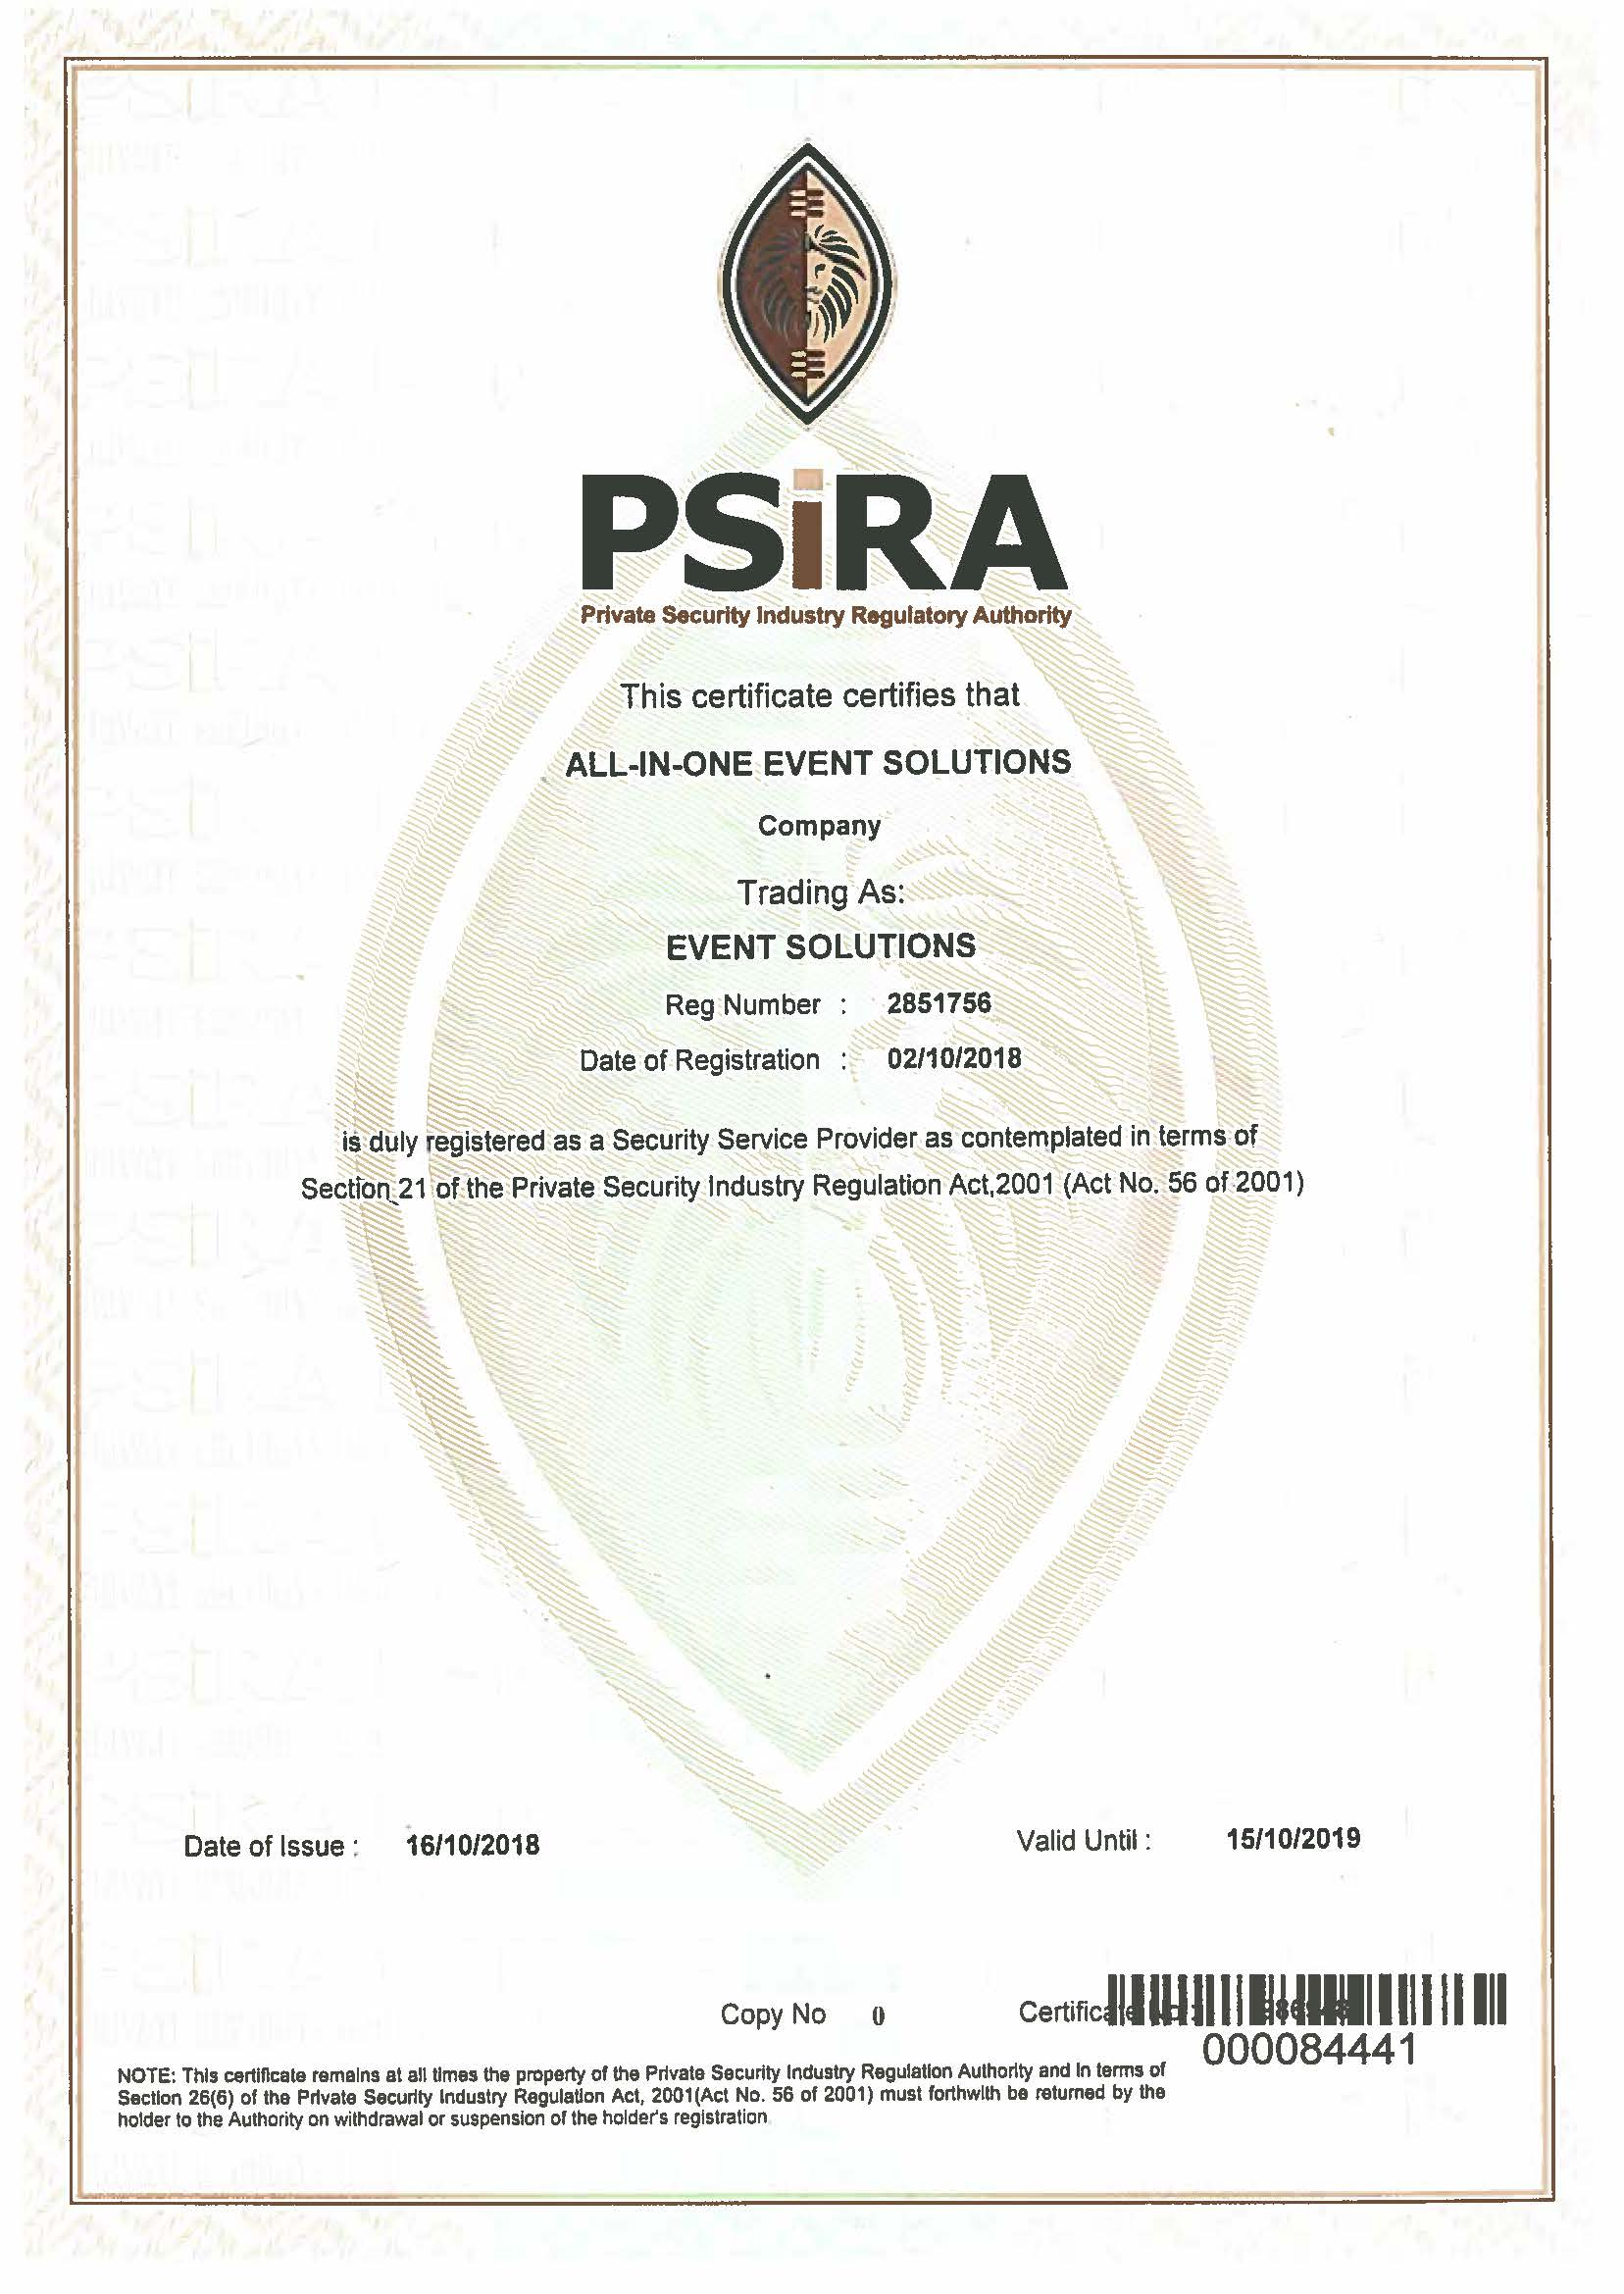 All-In-One Event Solutions Psira Certificate Oct 2018.jpg